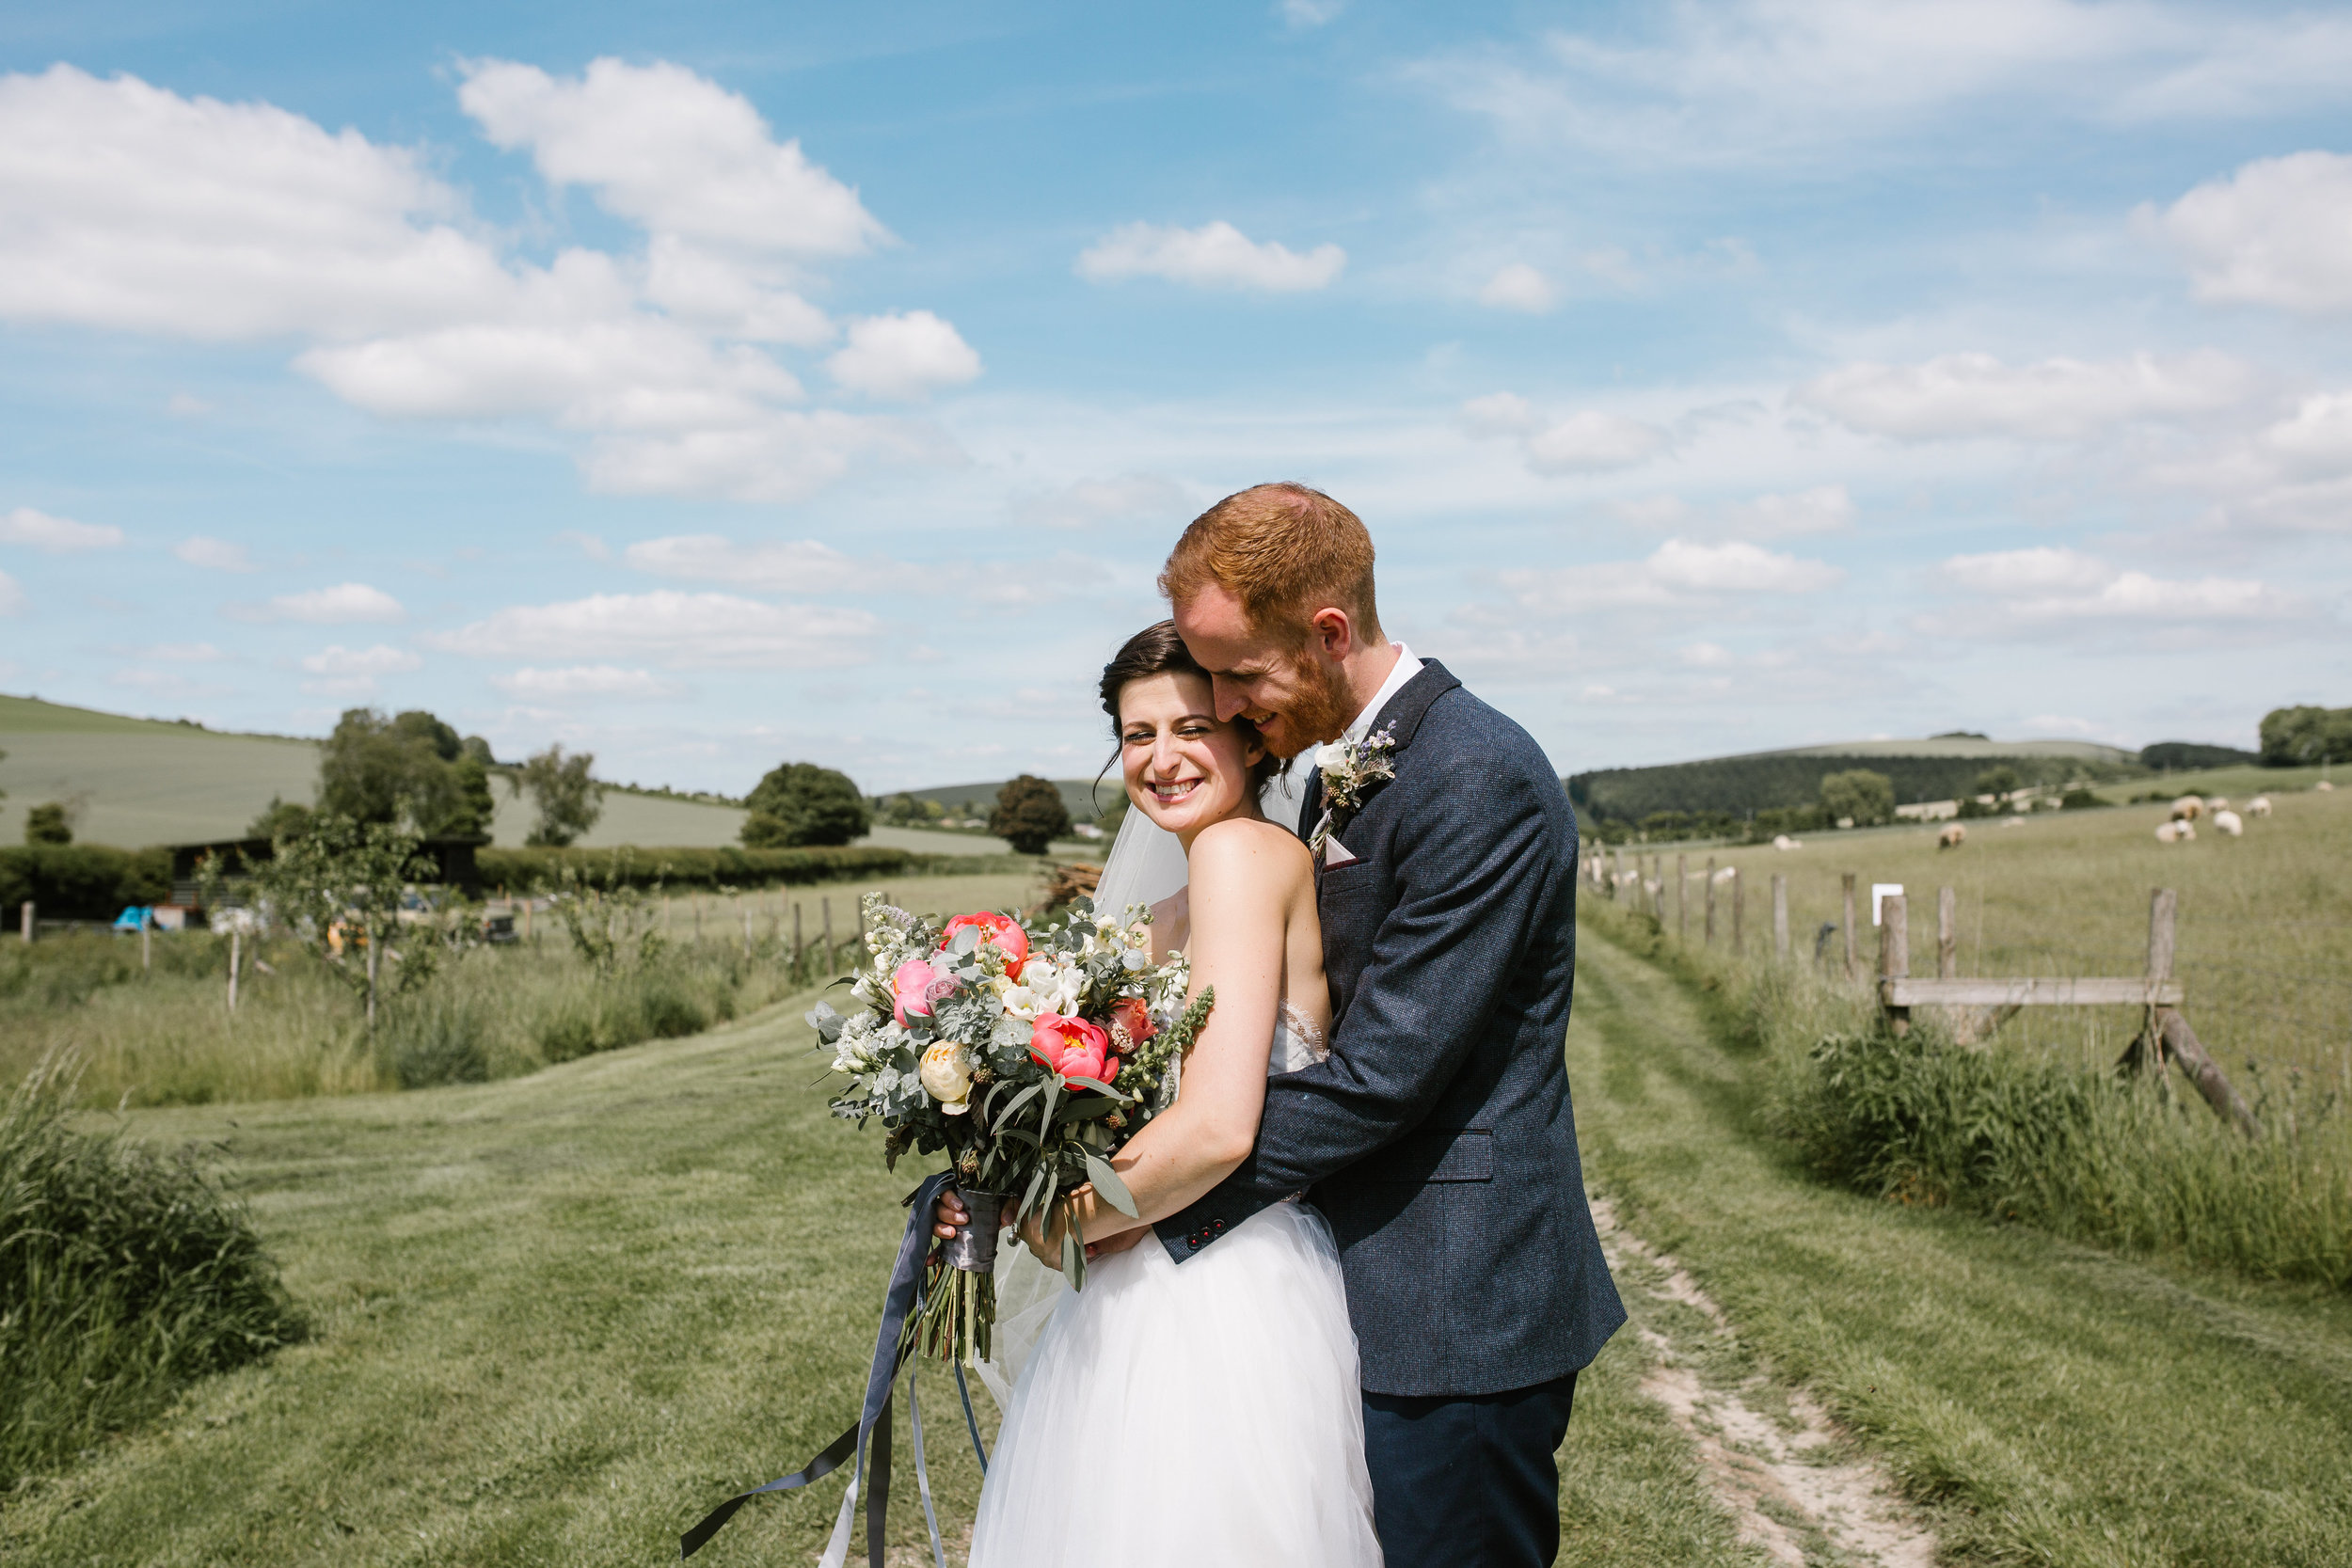 summer wedding at upwaltham barns as the bride and groom cuddle up close together